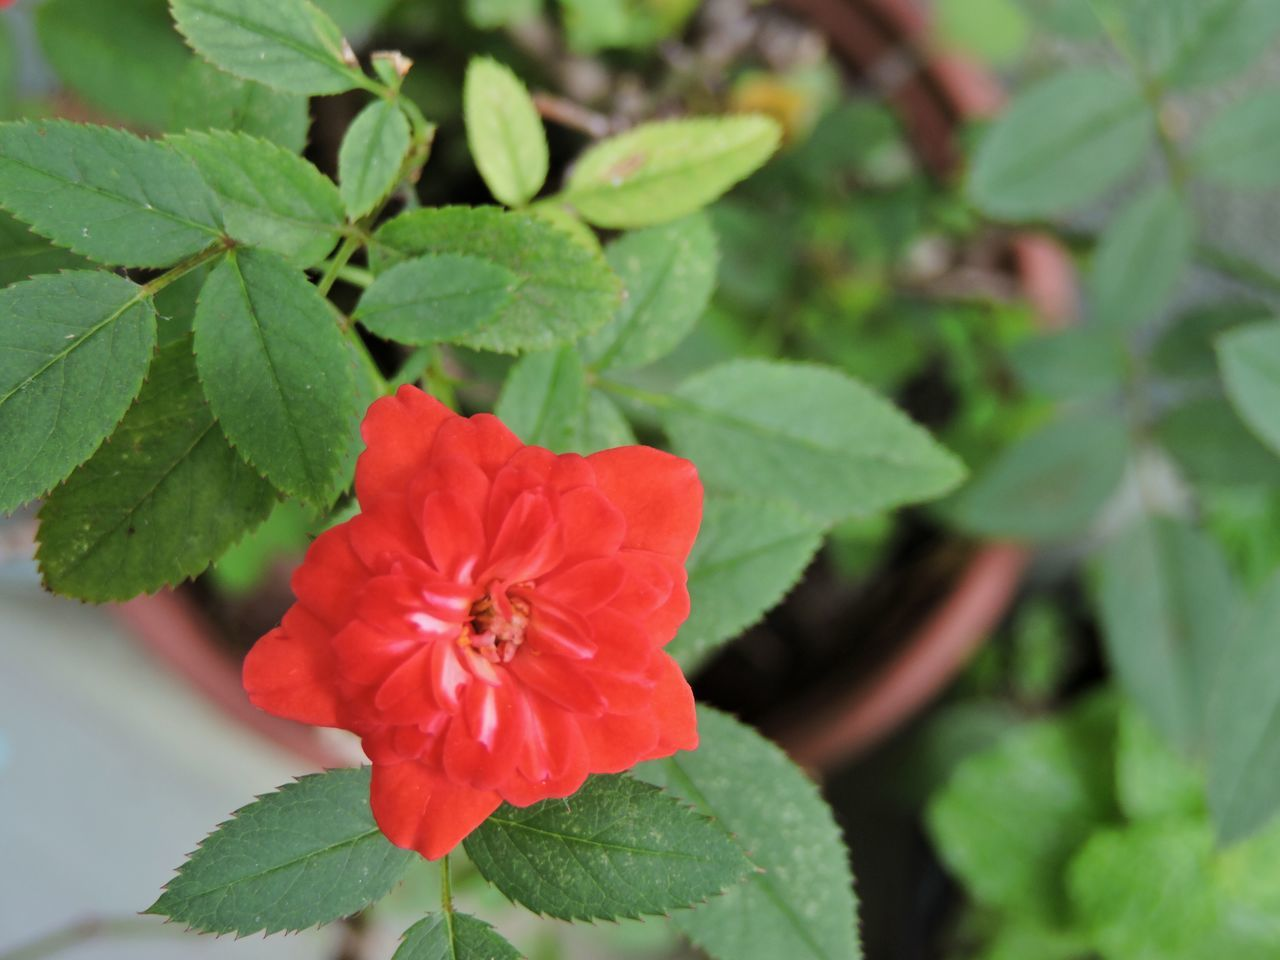 leaf, flower, plant, growth, petal, nature, beauty in nature, green color, fragility, freshness, red, flower head, no people, blooming, close-up, outdoors, day, hibiscus, animal themes, periwinkle